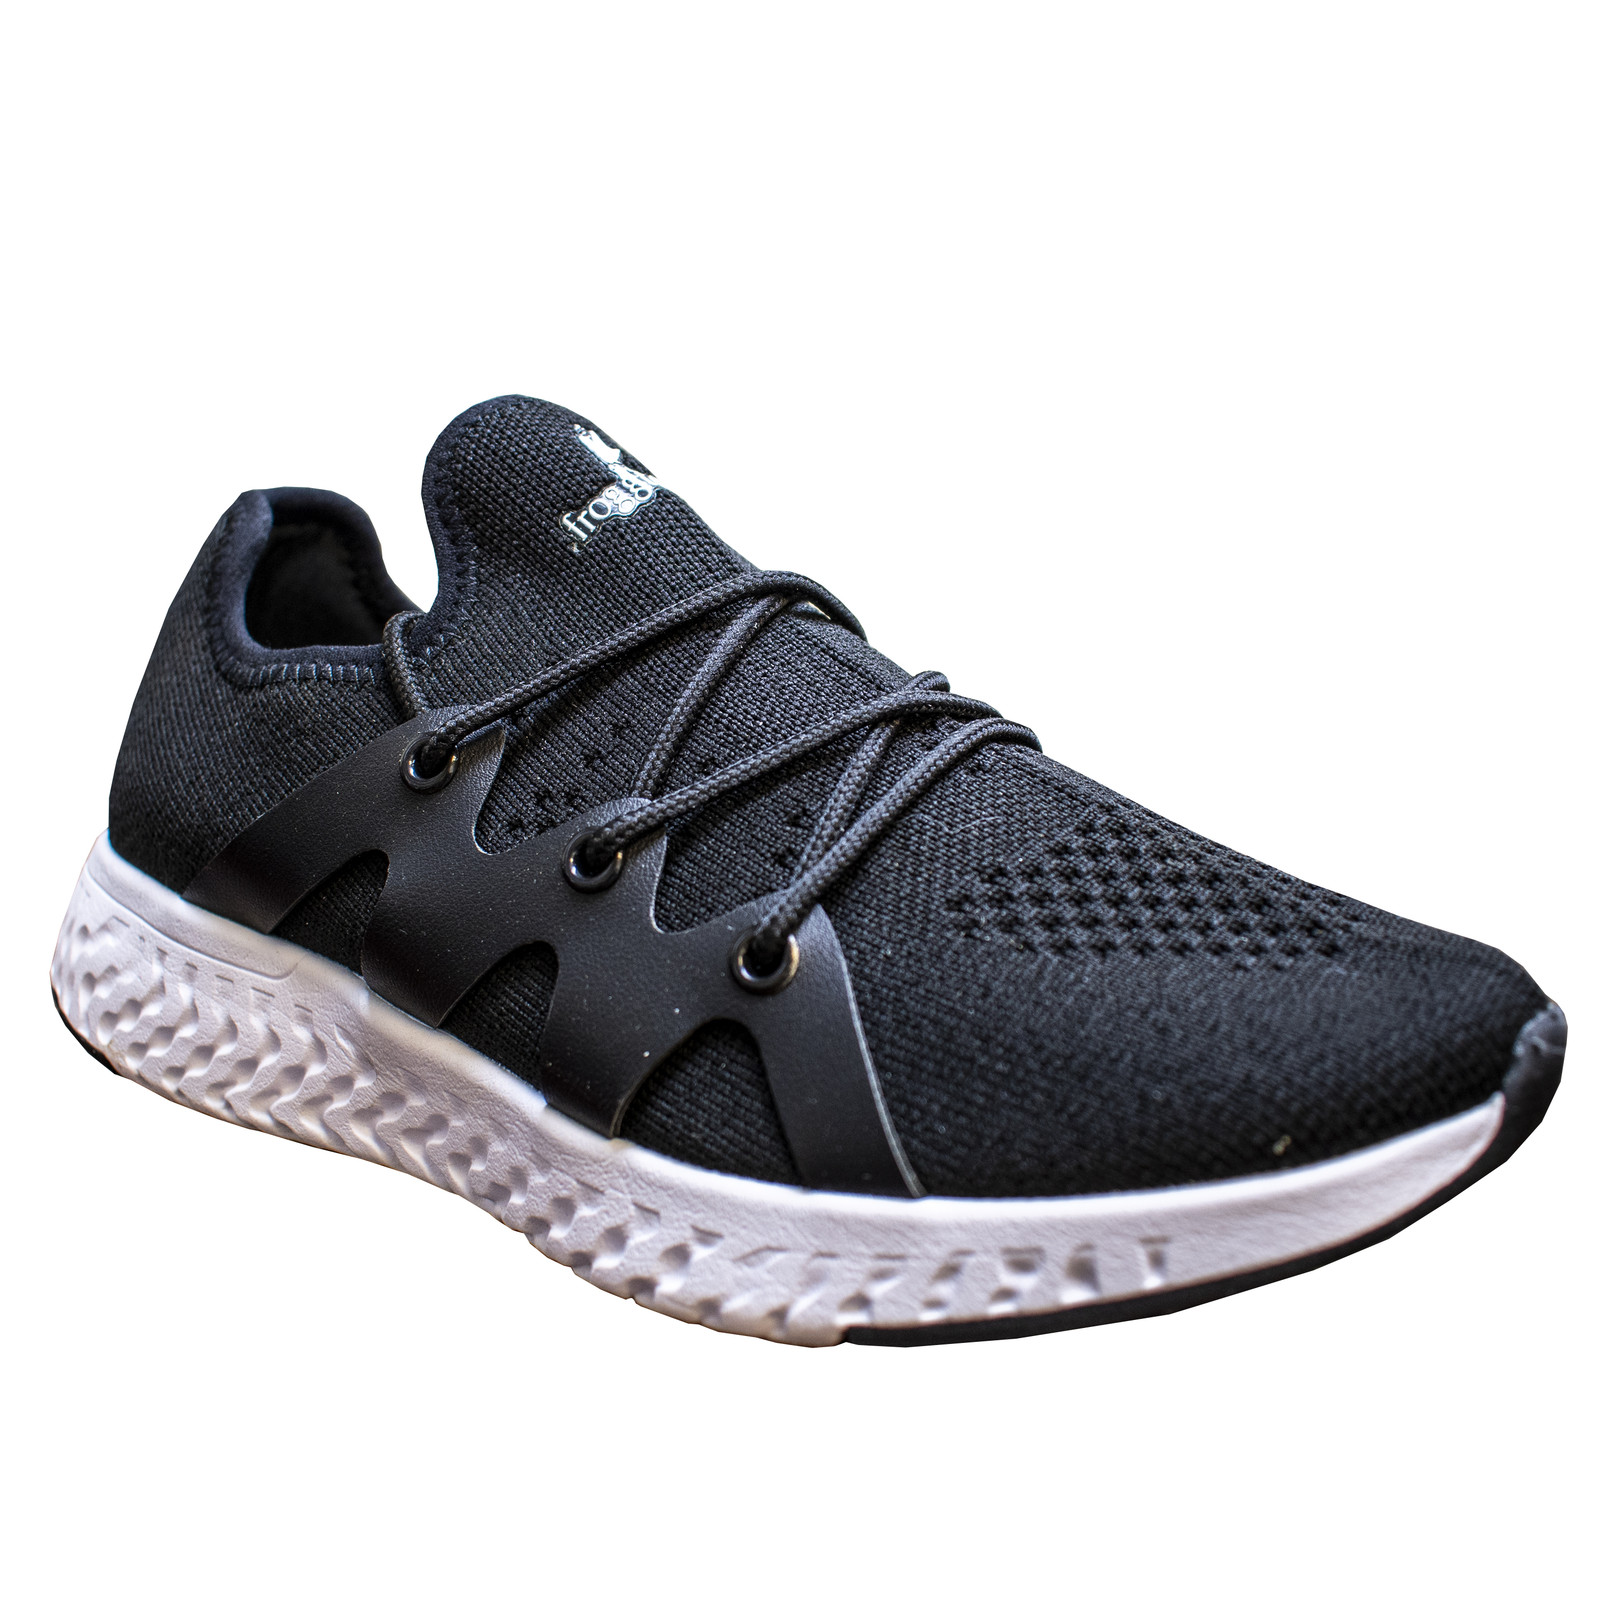 Women's High and Dry Shoe Black-large